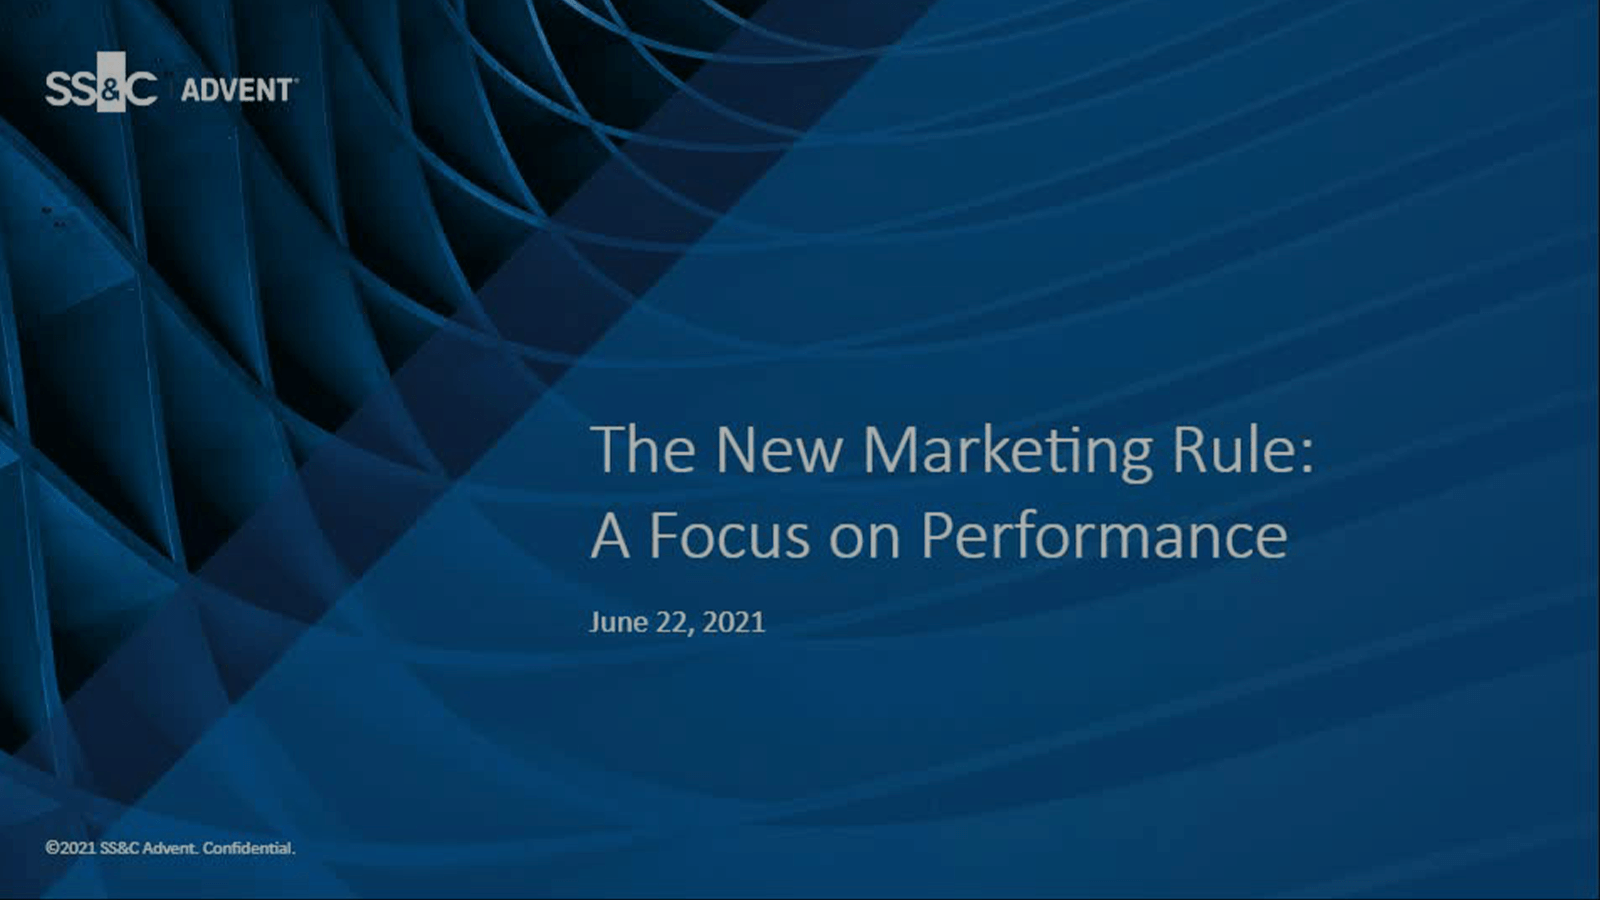 poster image for The New Marketing Rule: A Focus on Performance